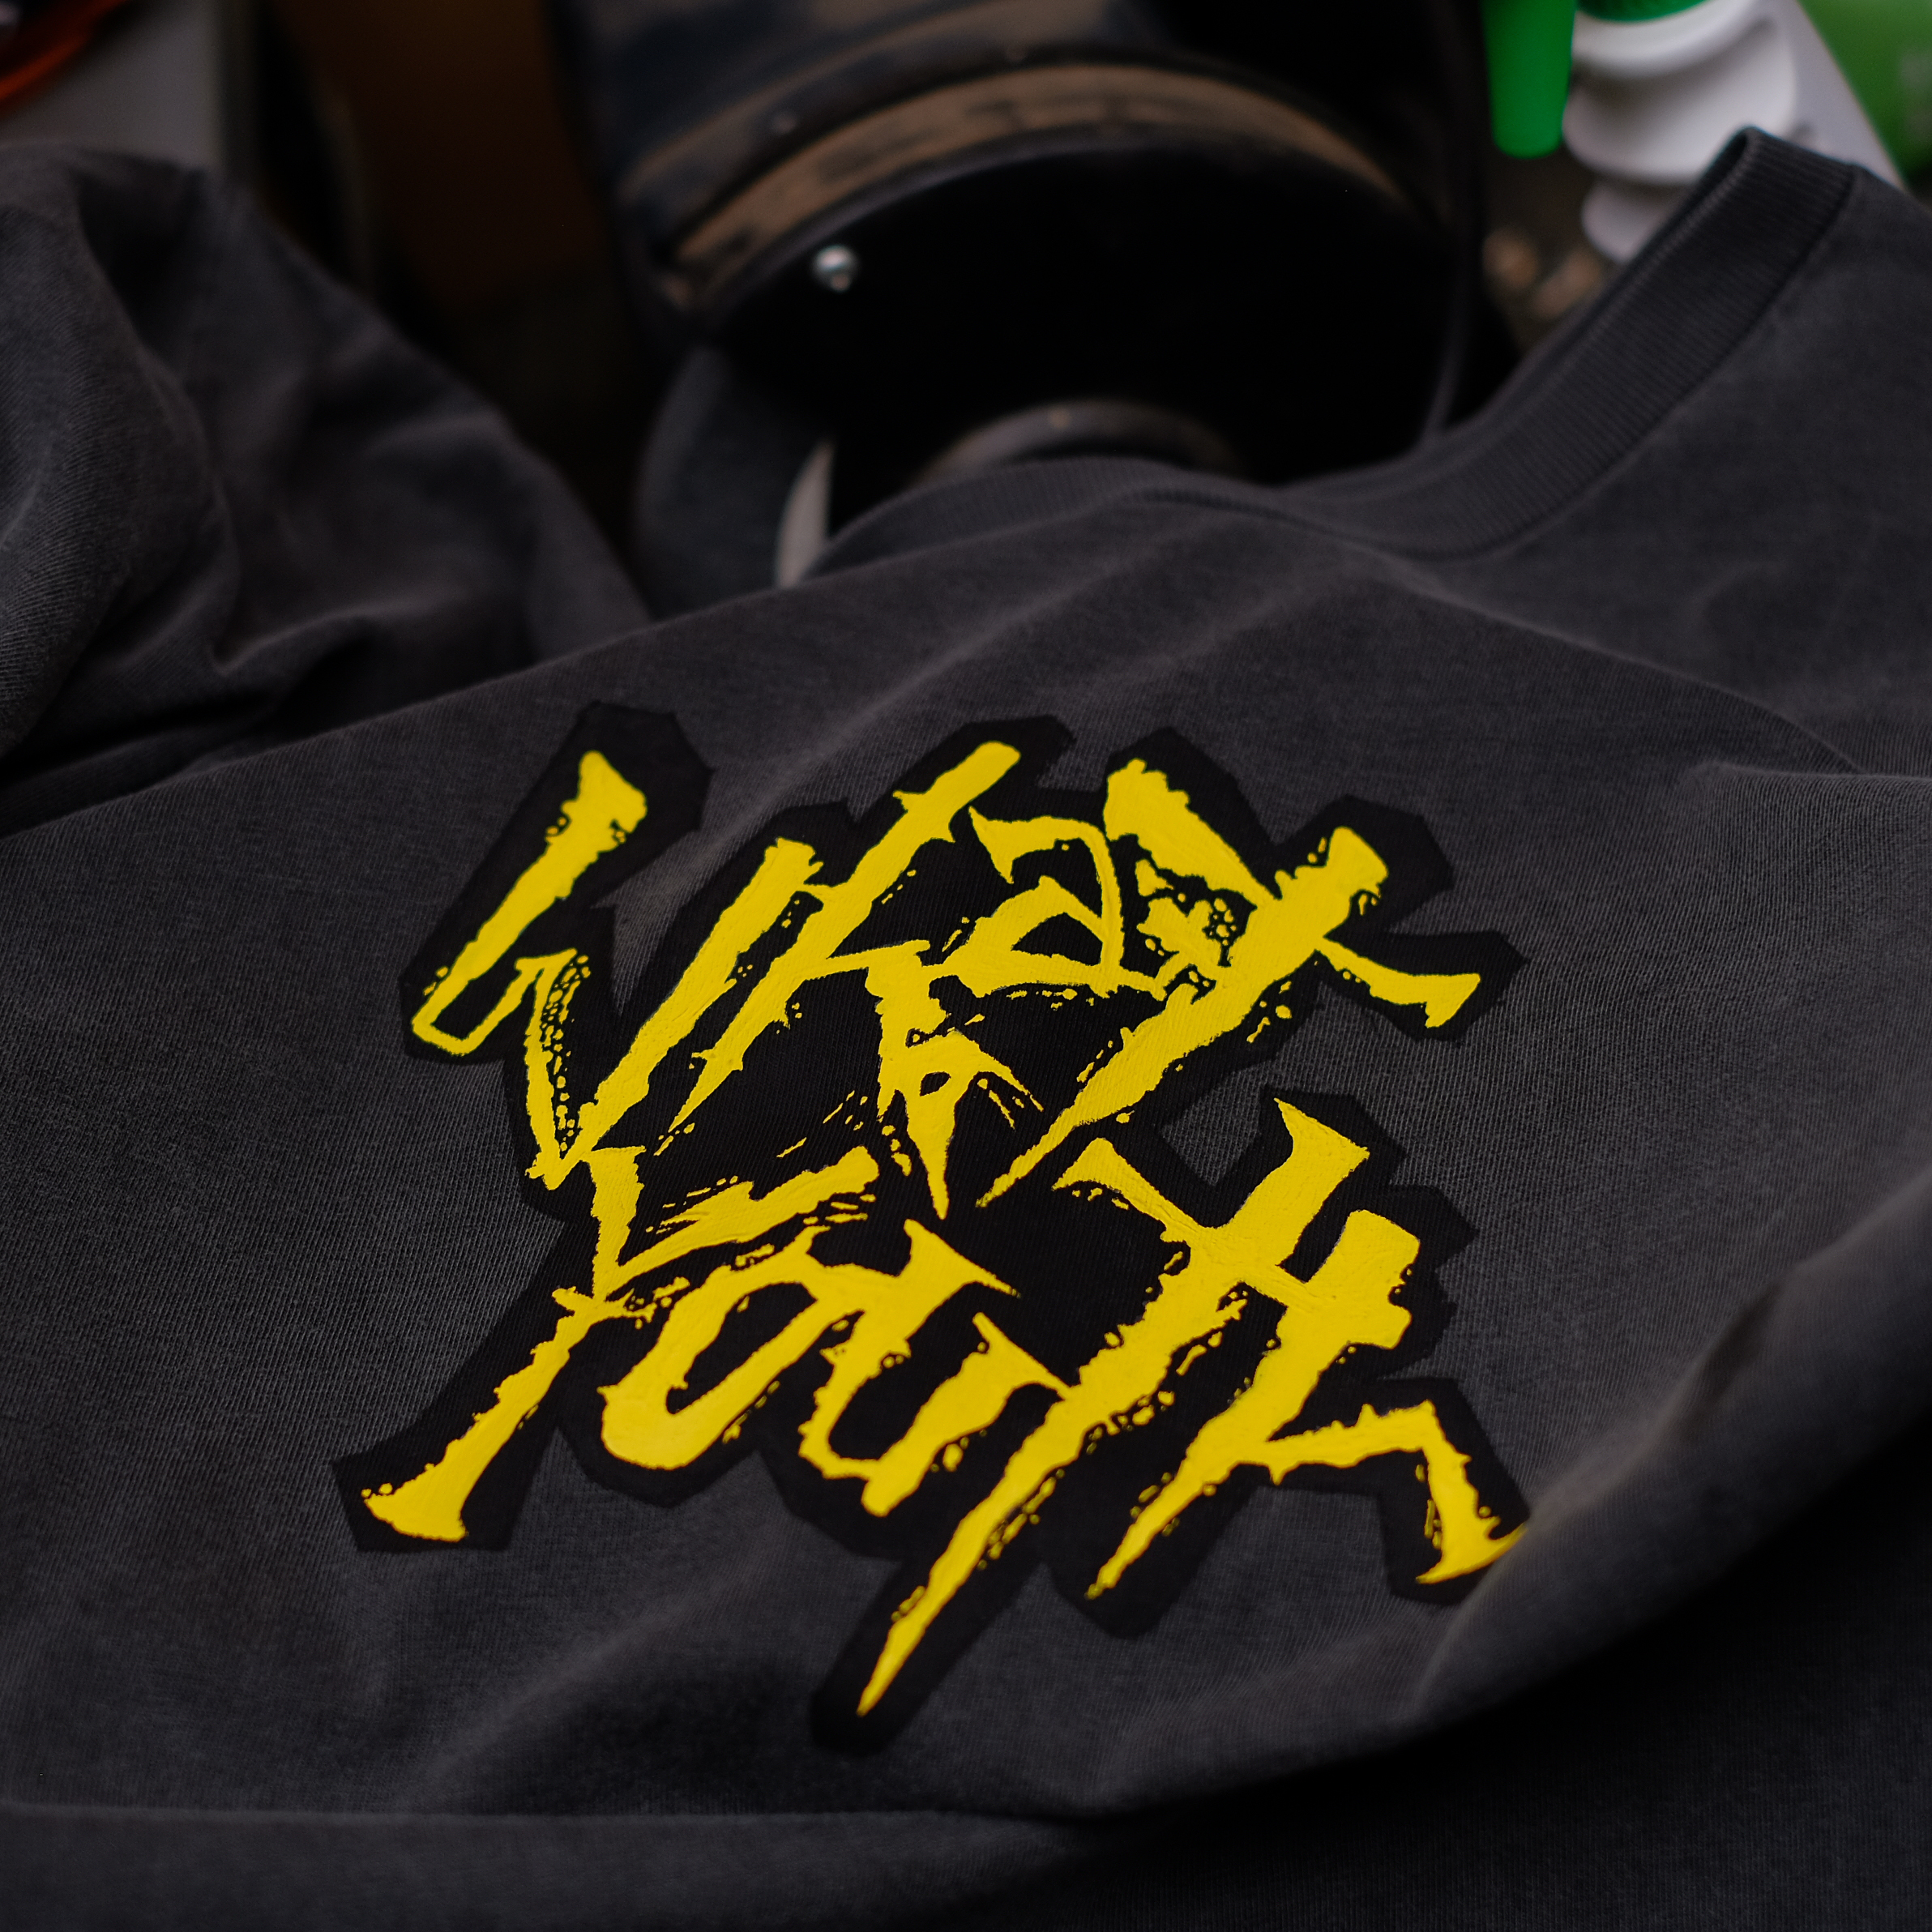 what_youth_werkbank_preview.jpg